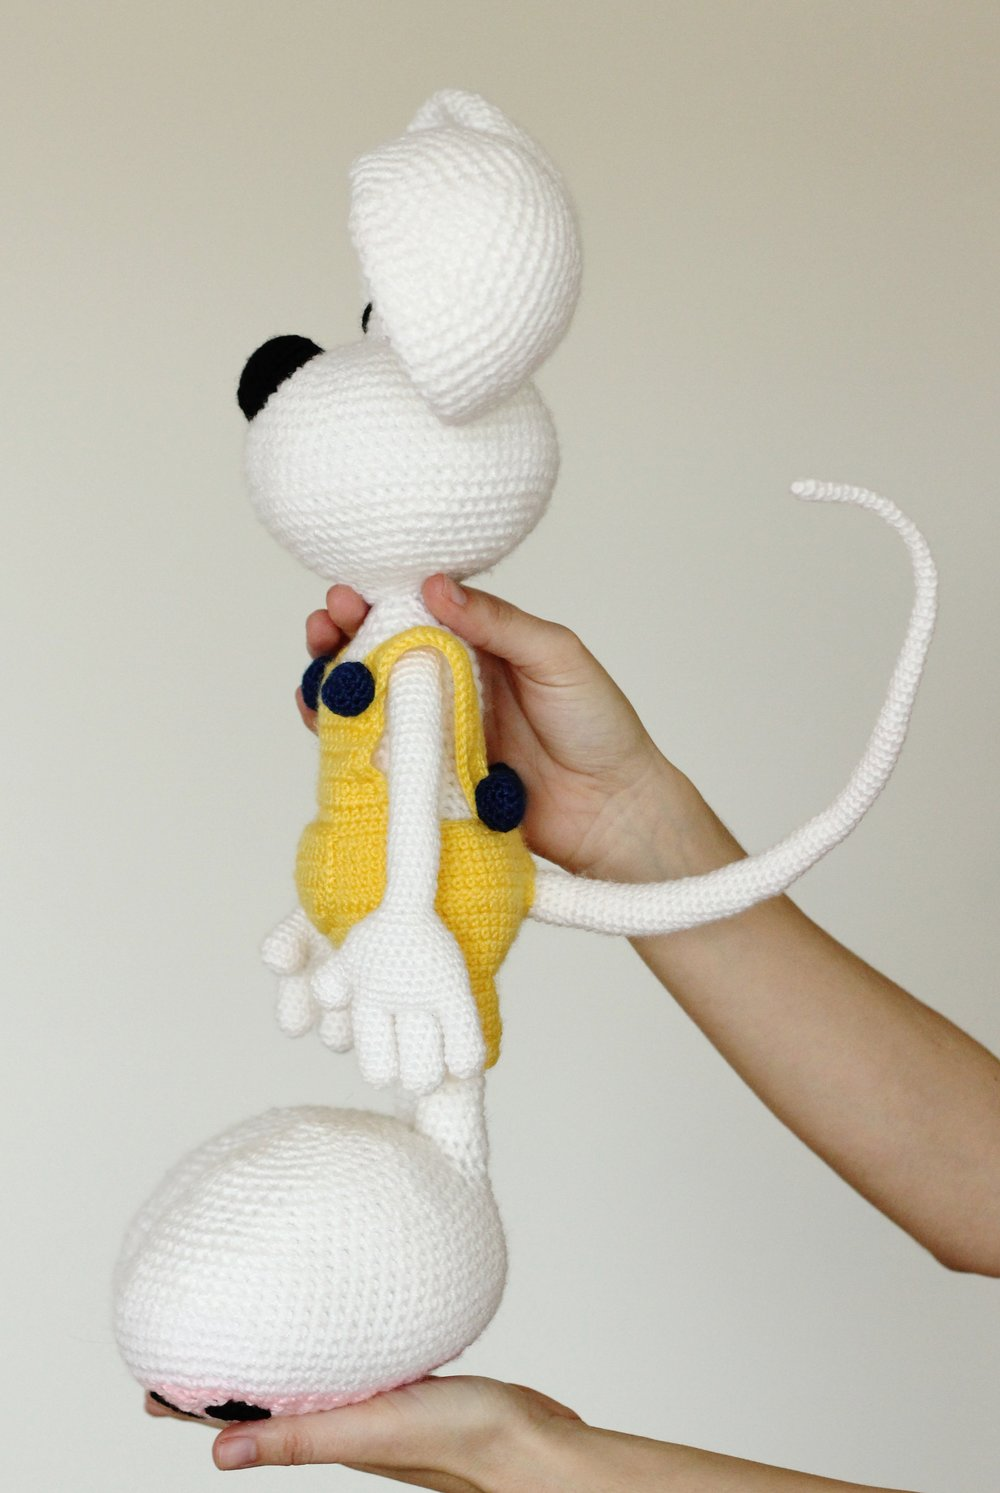 White mouse stuffed toy